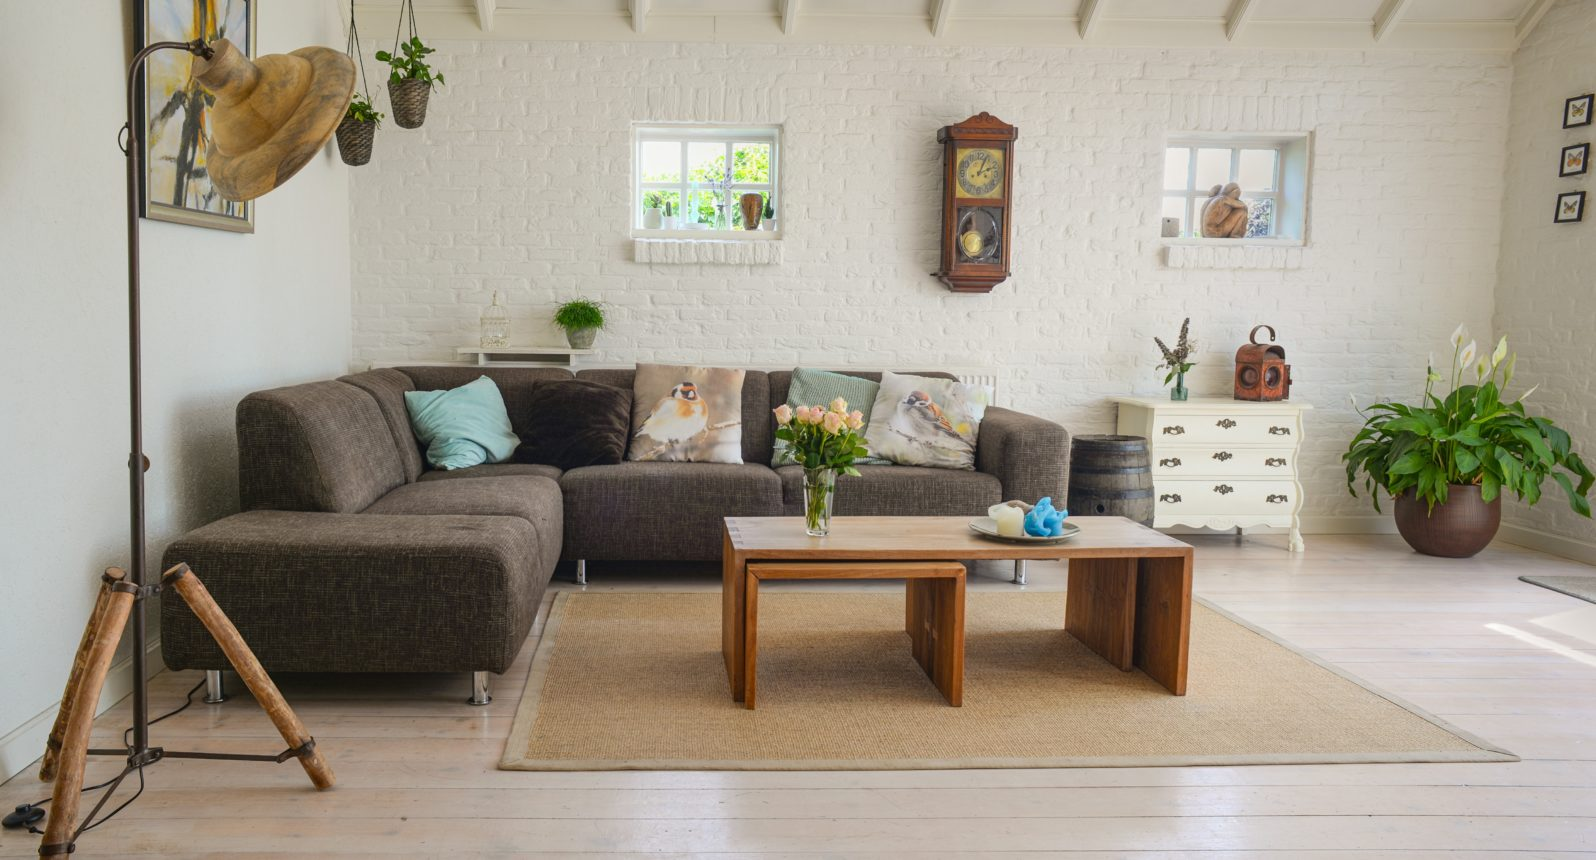 Bown wooden centre table with chase lounge and exposed beams in a cute interior designed living room